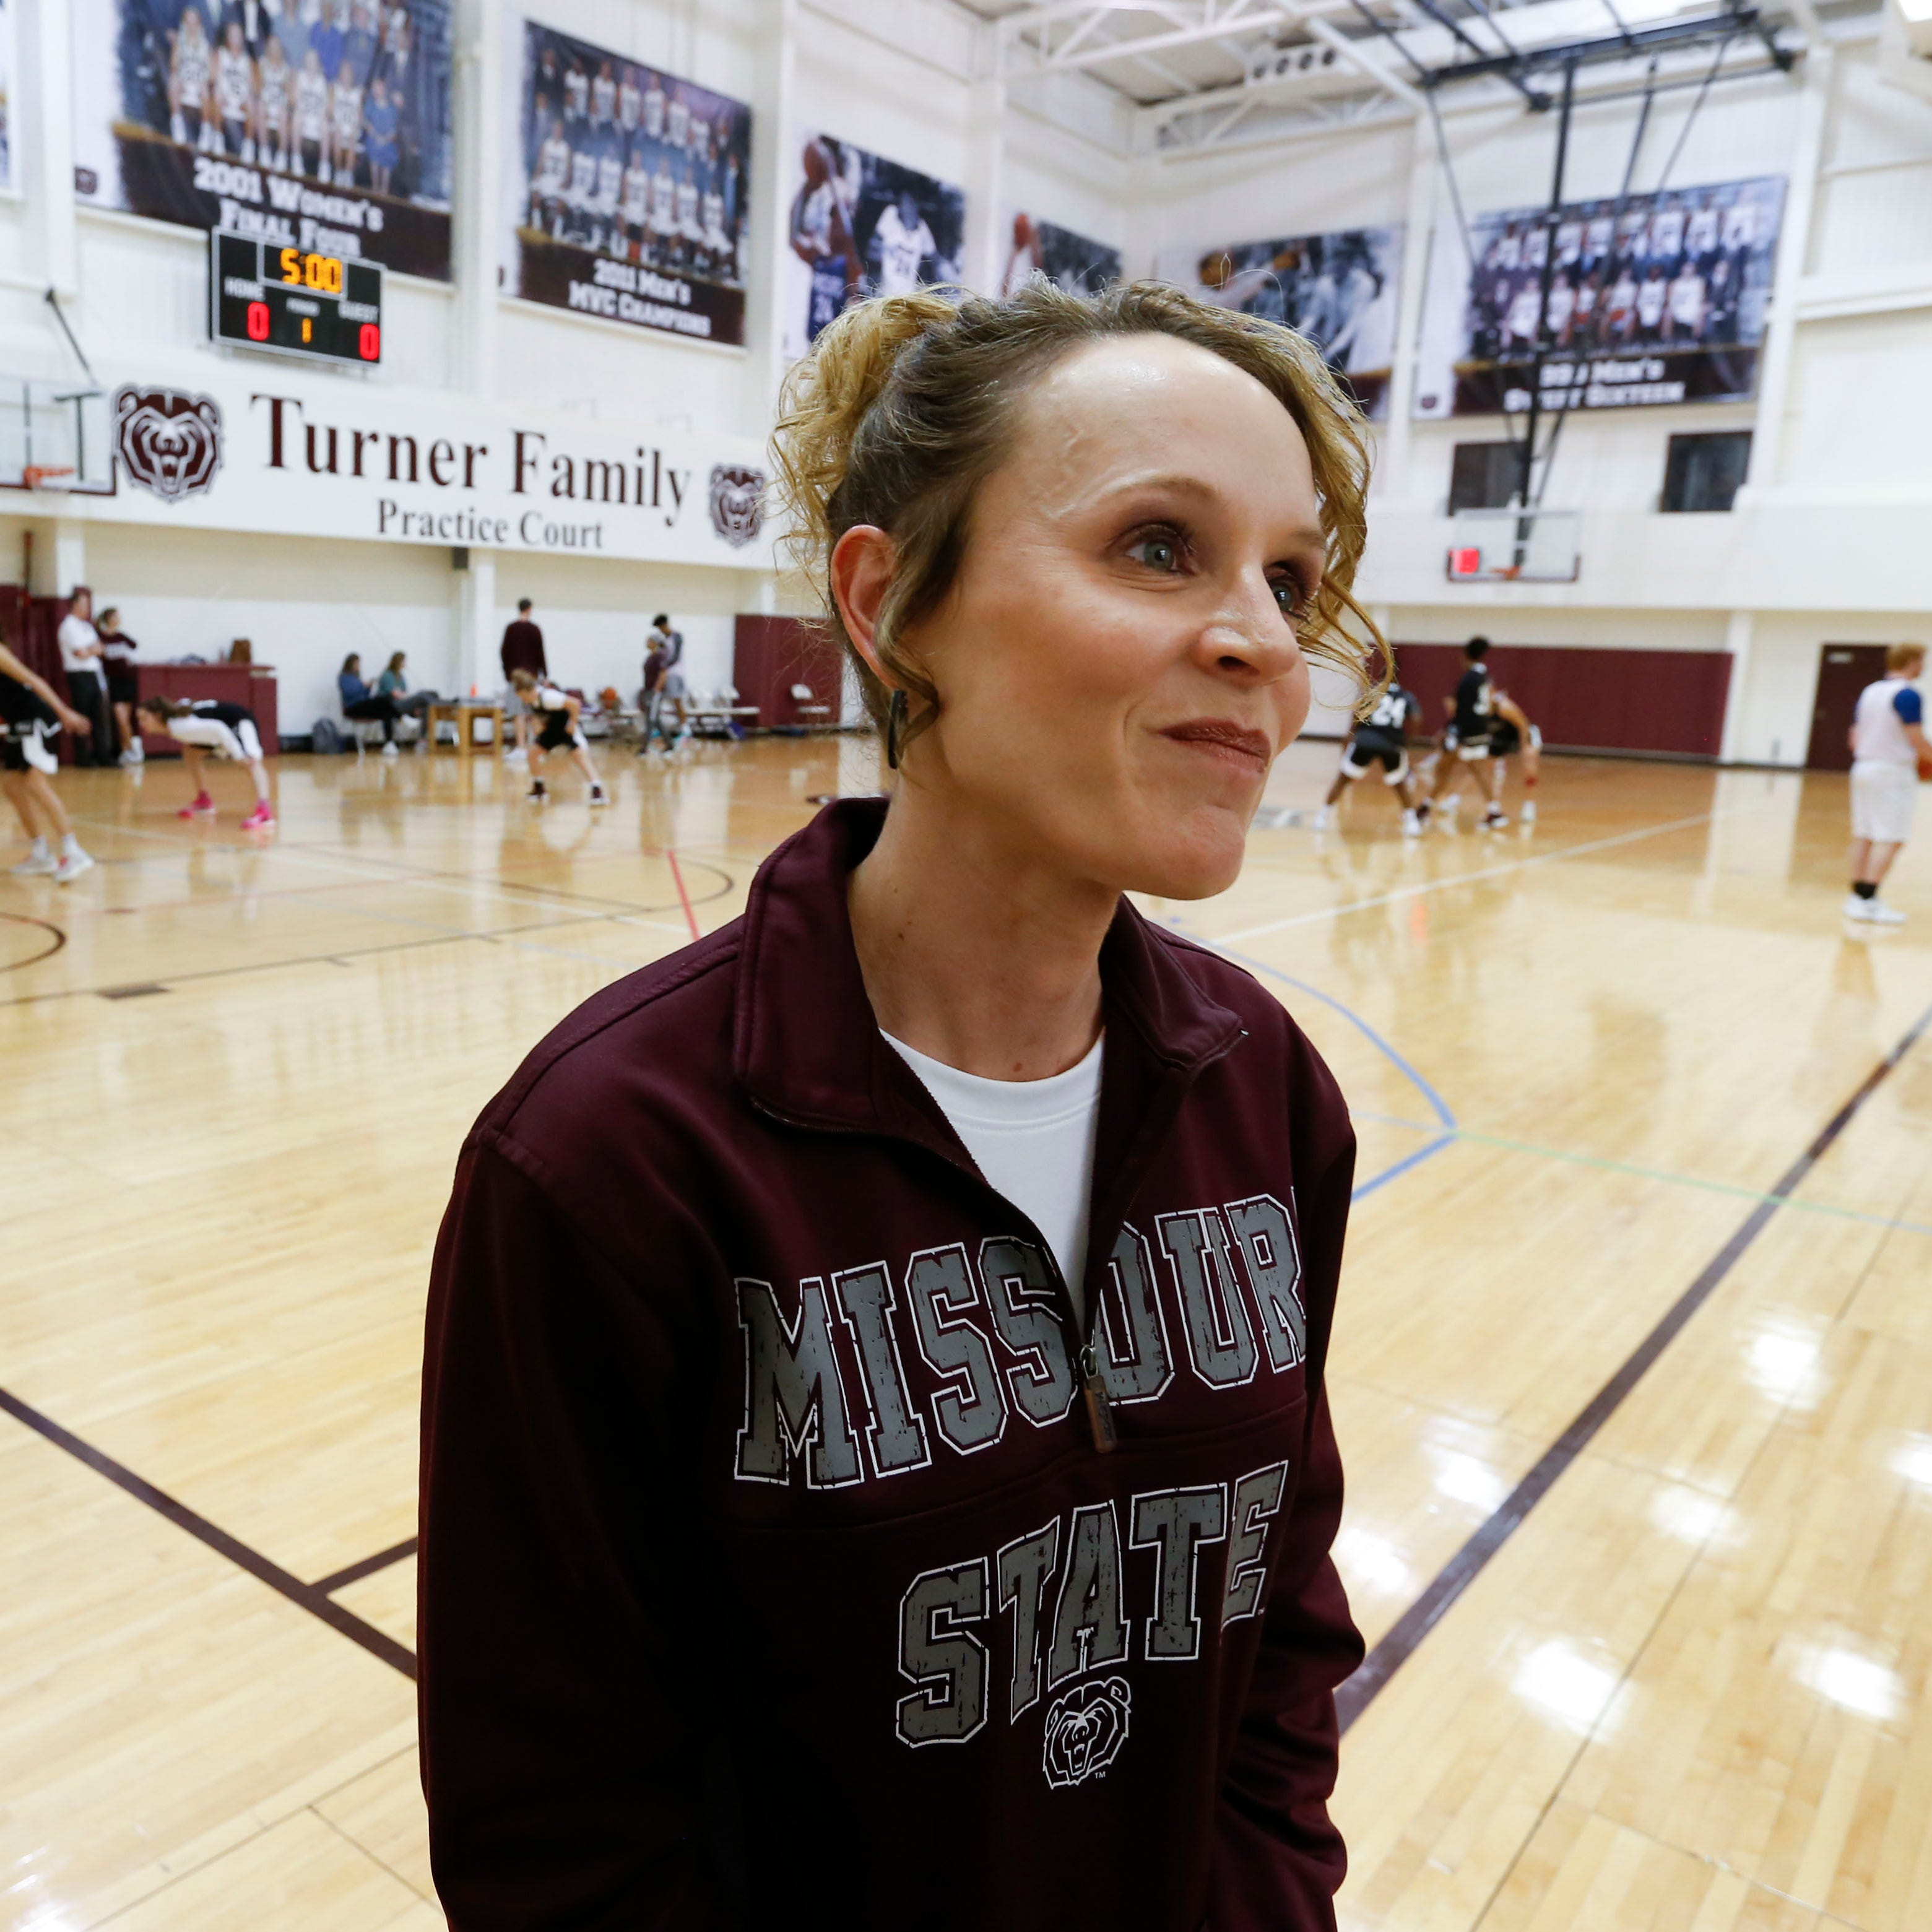 MSU Lady Bears vs. Jackie Stiles? It could happen in November